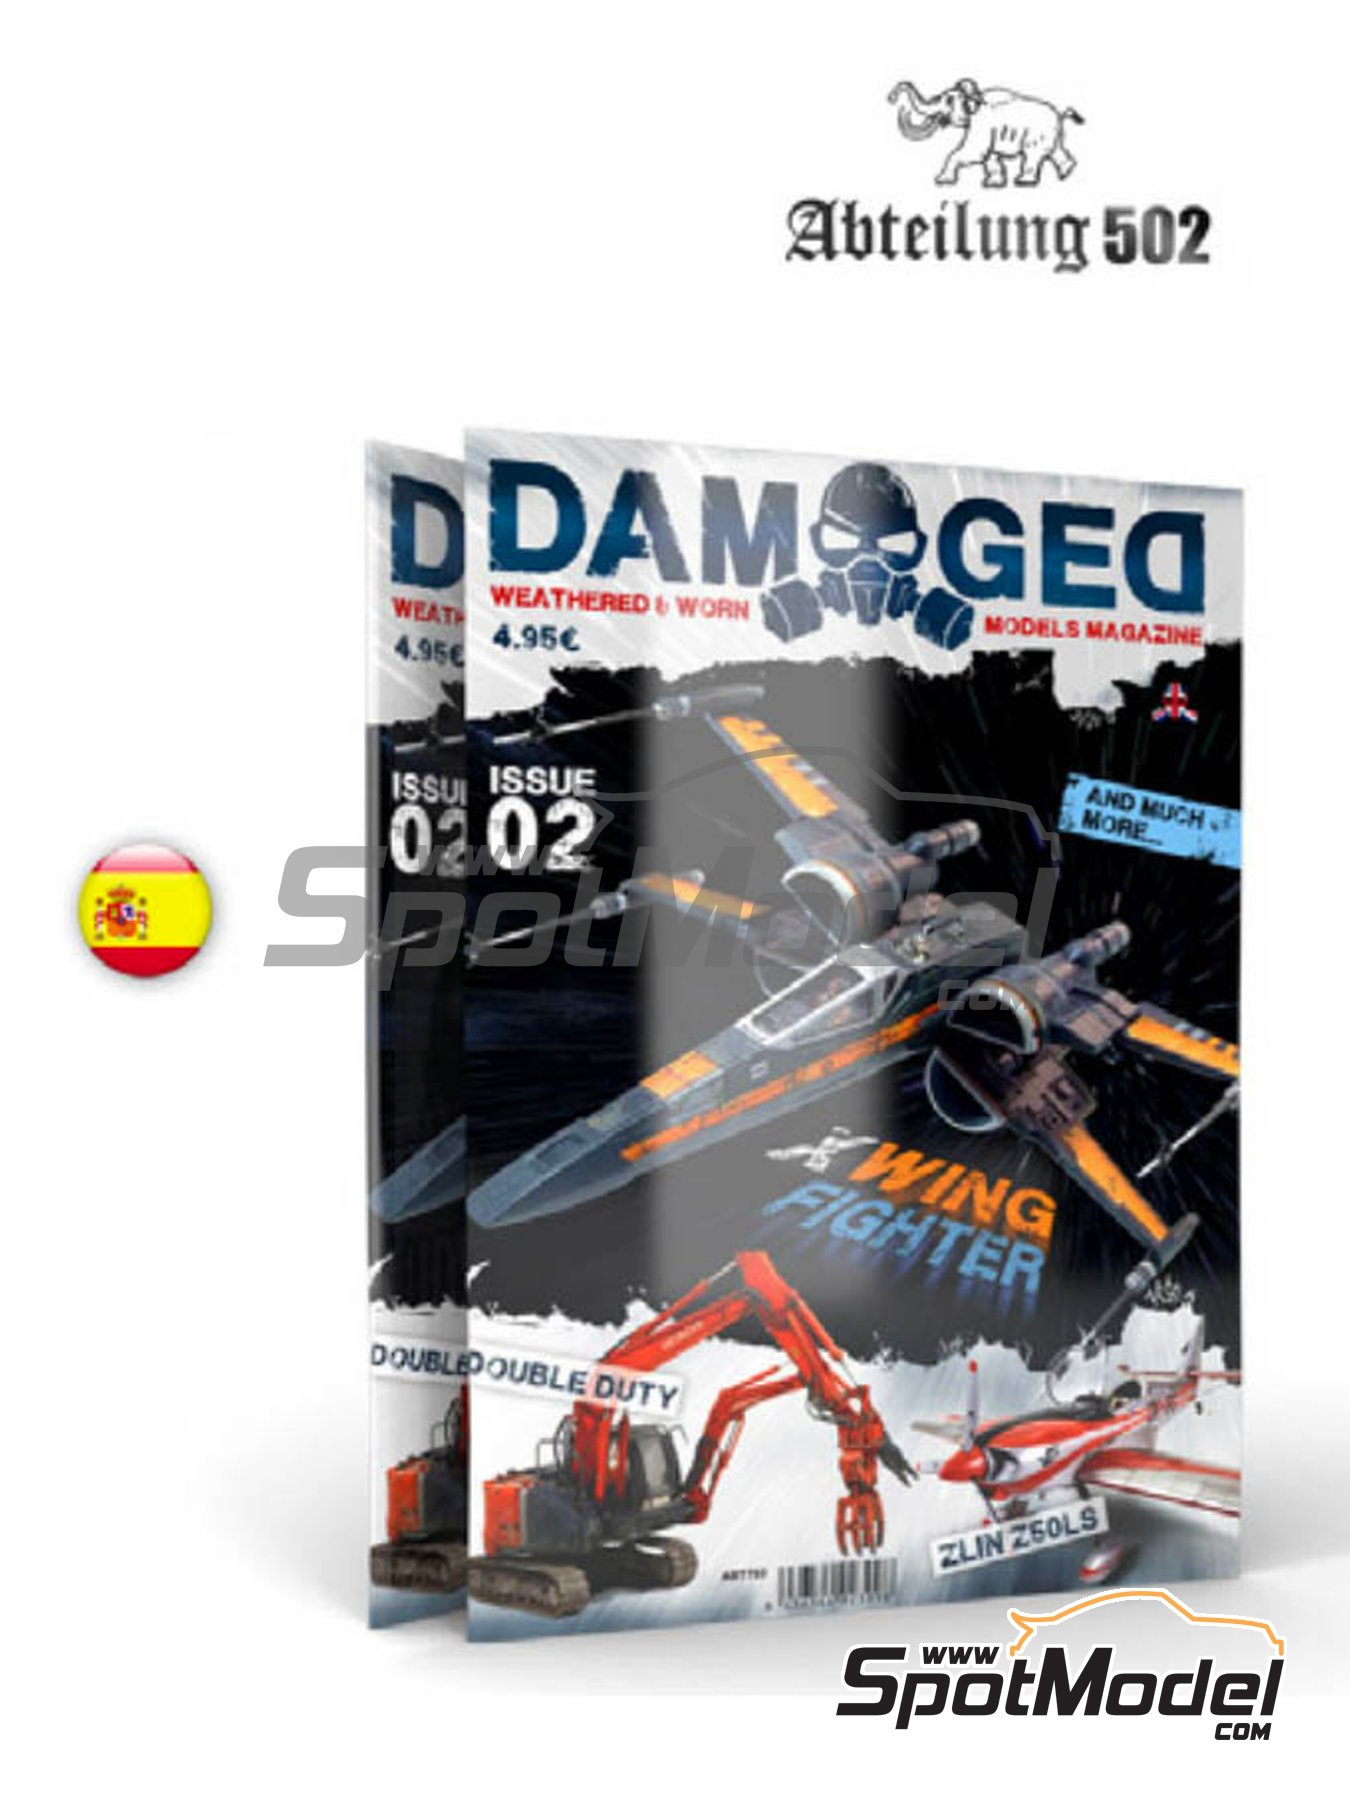 Damaged - Weathered and worn: Number 2 - spanish edition | Magazine manufactured by AK Interactive (ref. ABT704) image